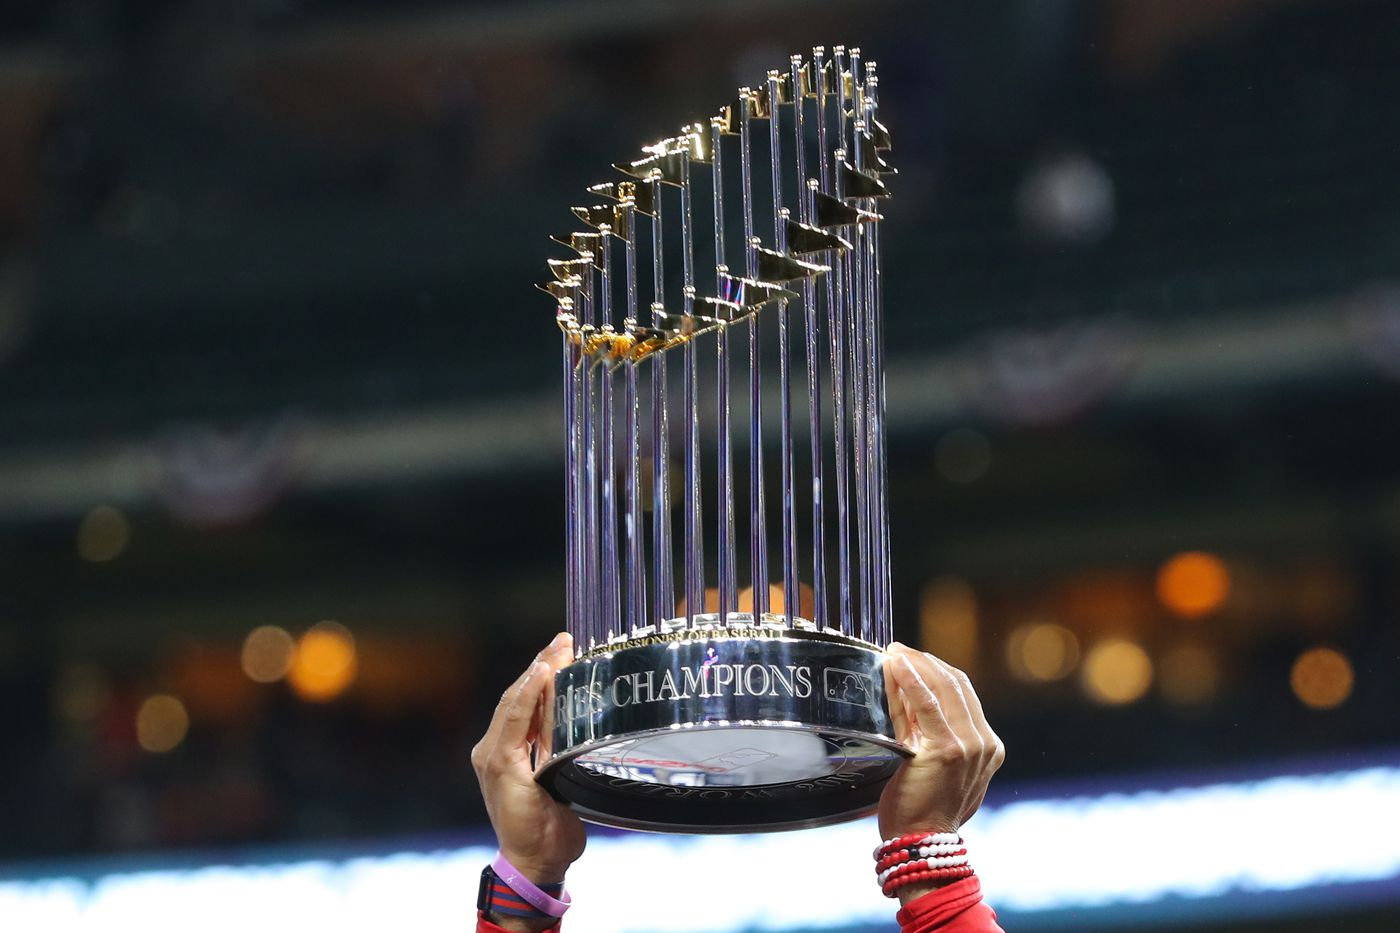 World Series Trivia! Highlights from the World Series 25, 50, 75 and 100 years ago